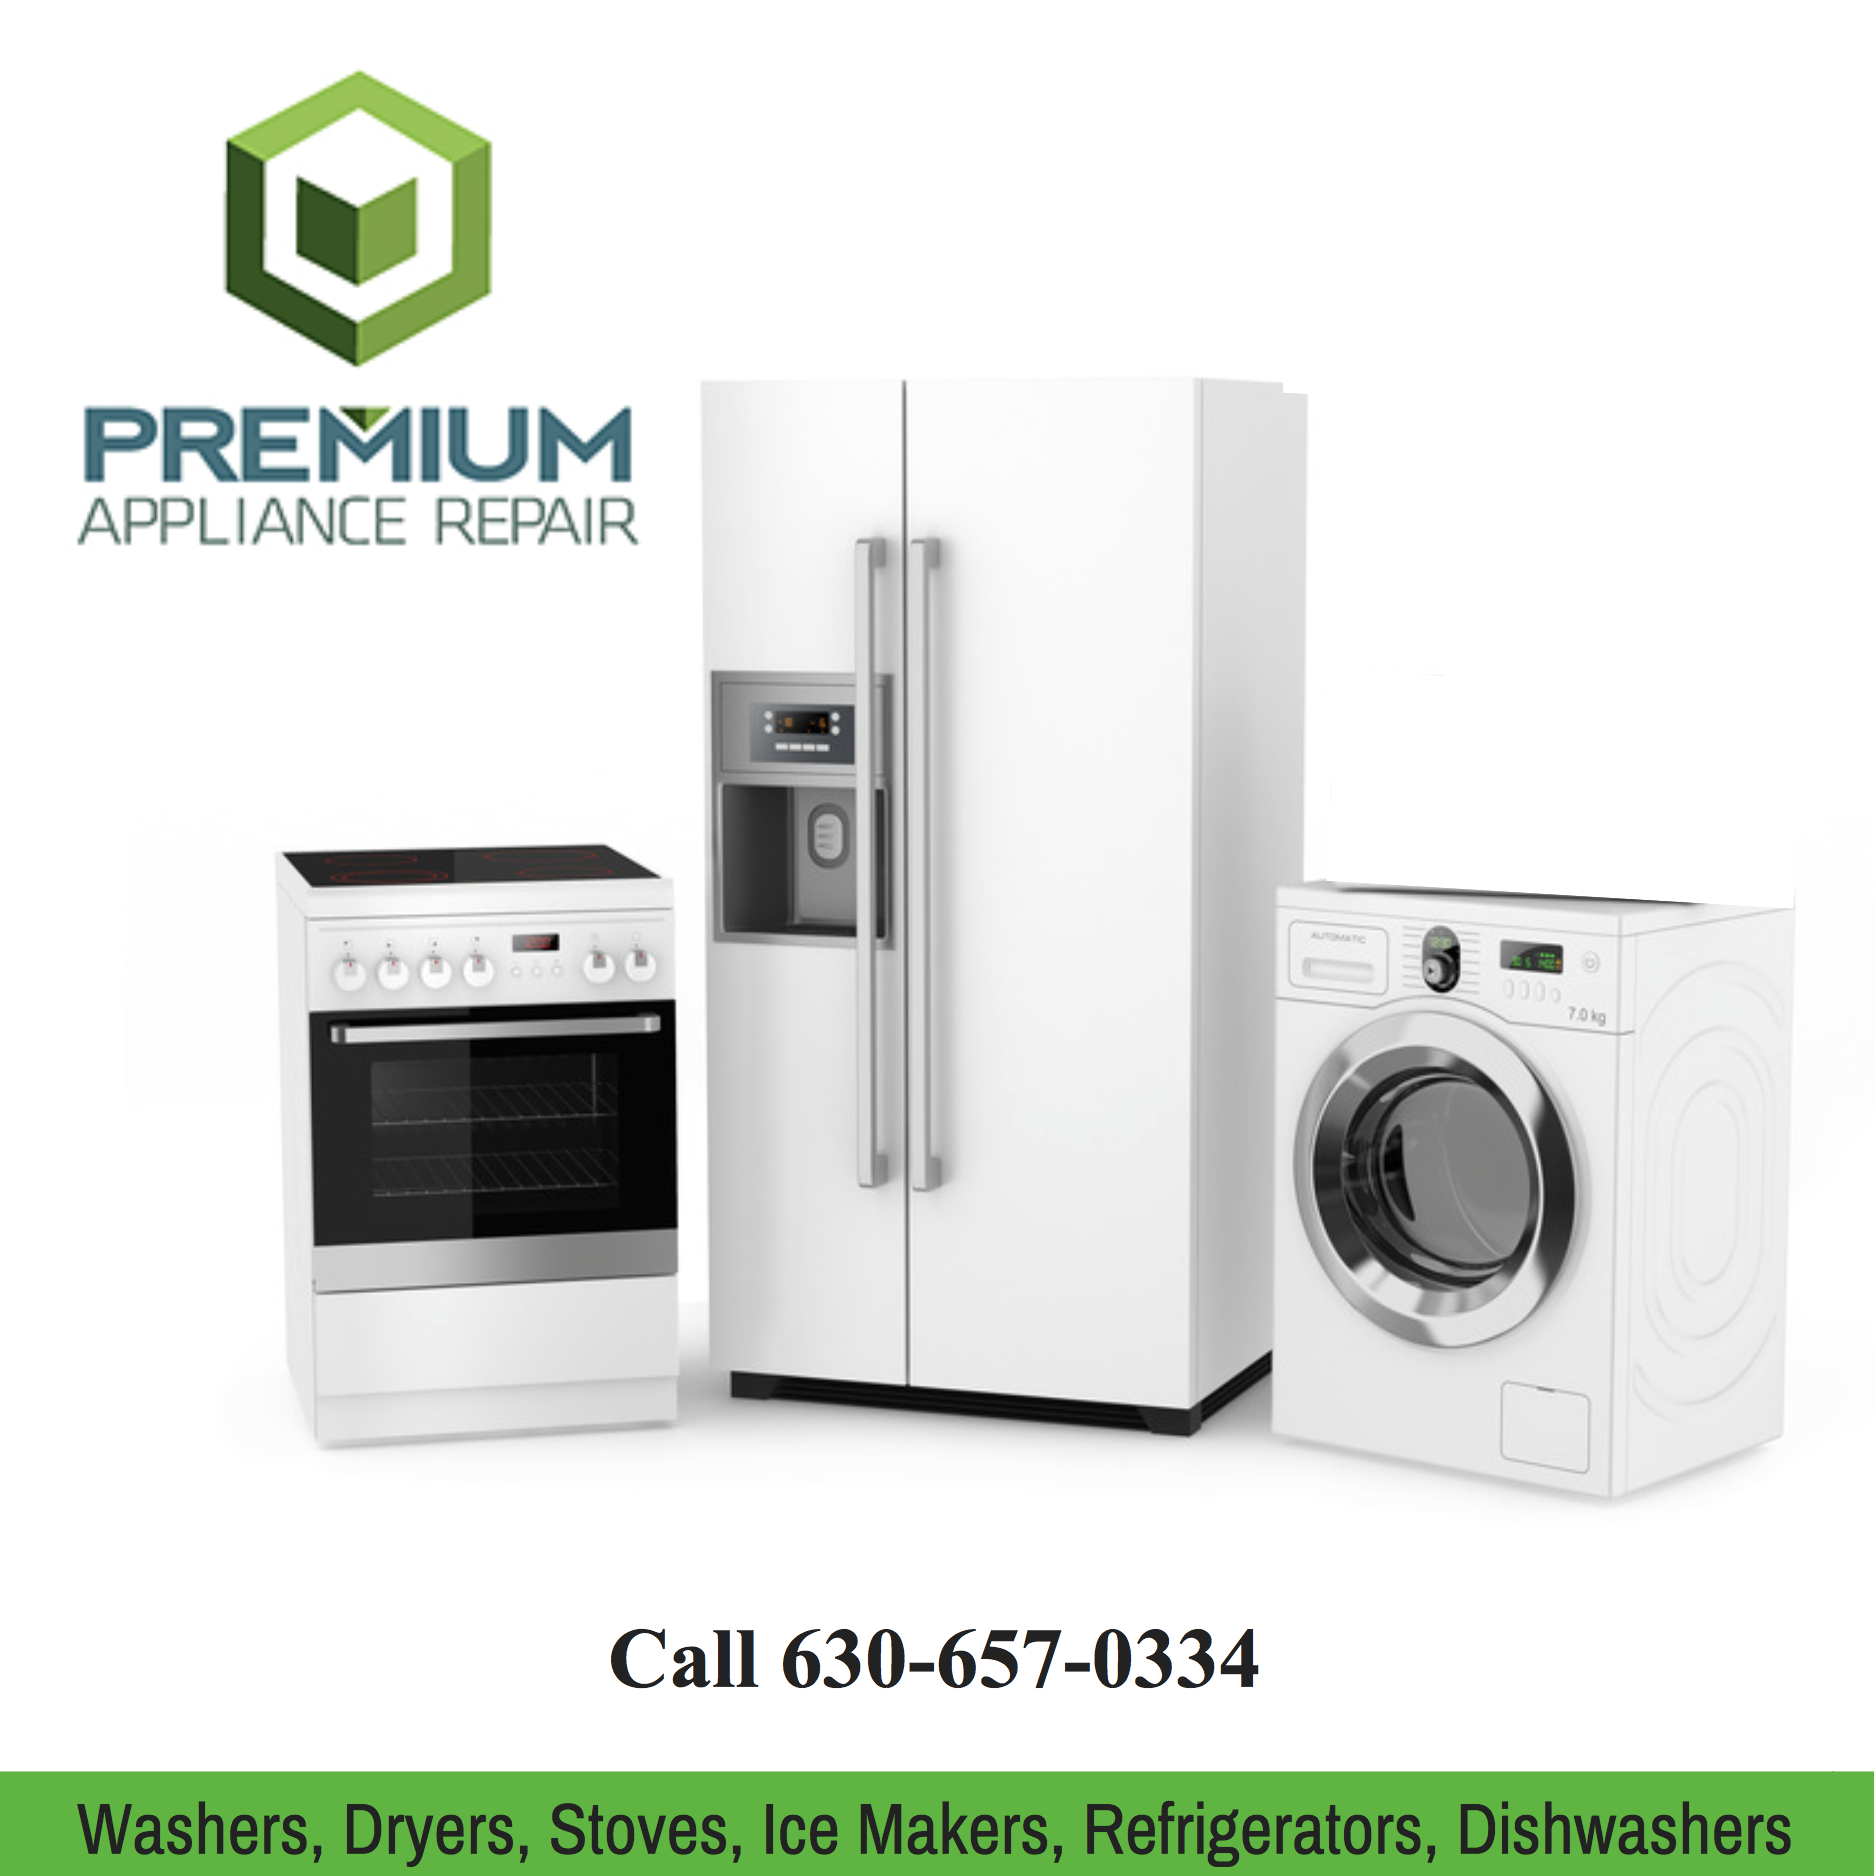 DIY Or Professional Appliance Repair Company — What Is The